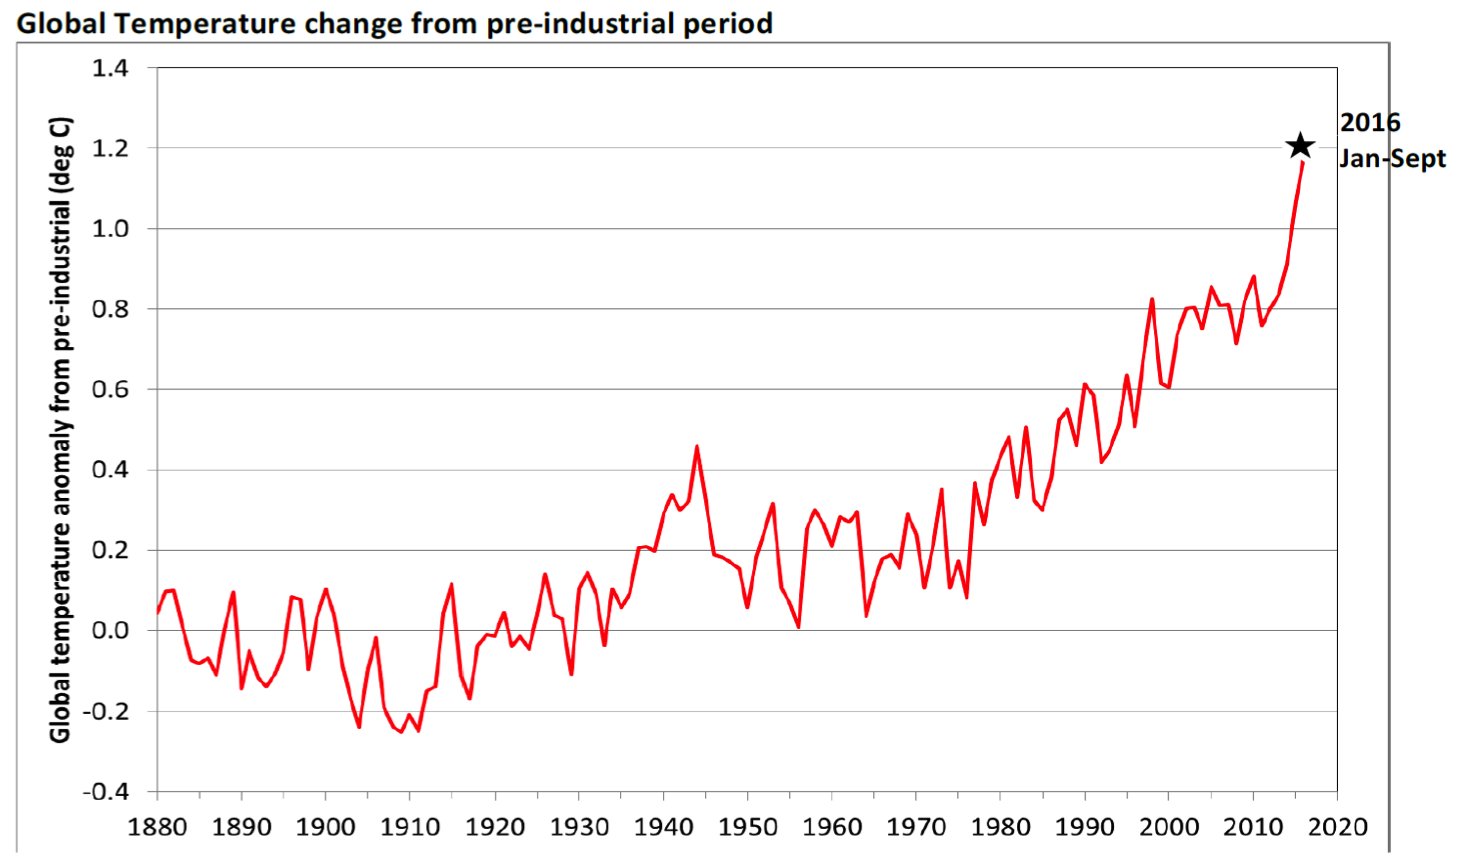 Pre-industrial period global temperature change